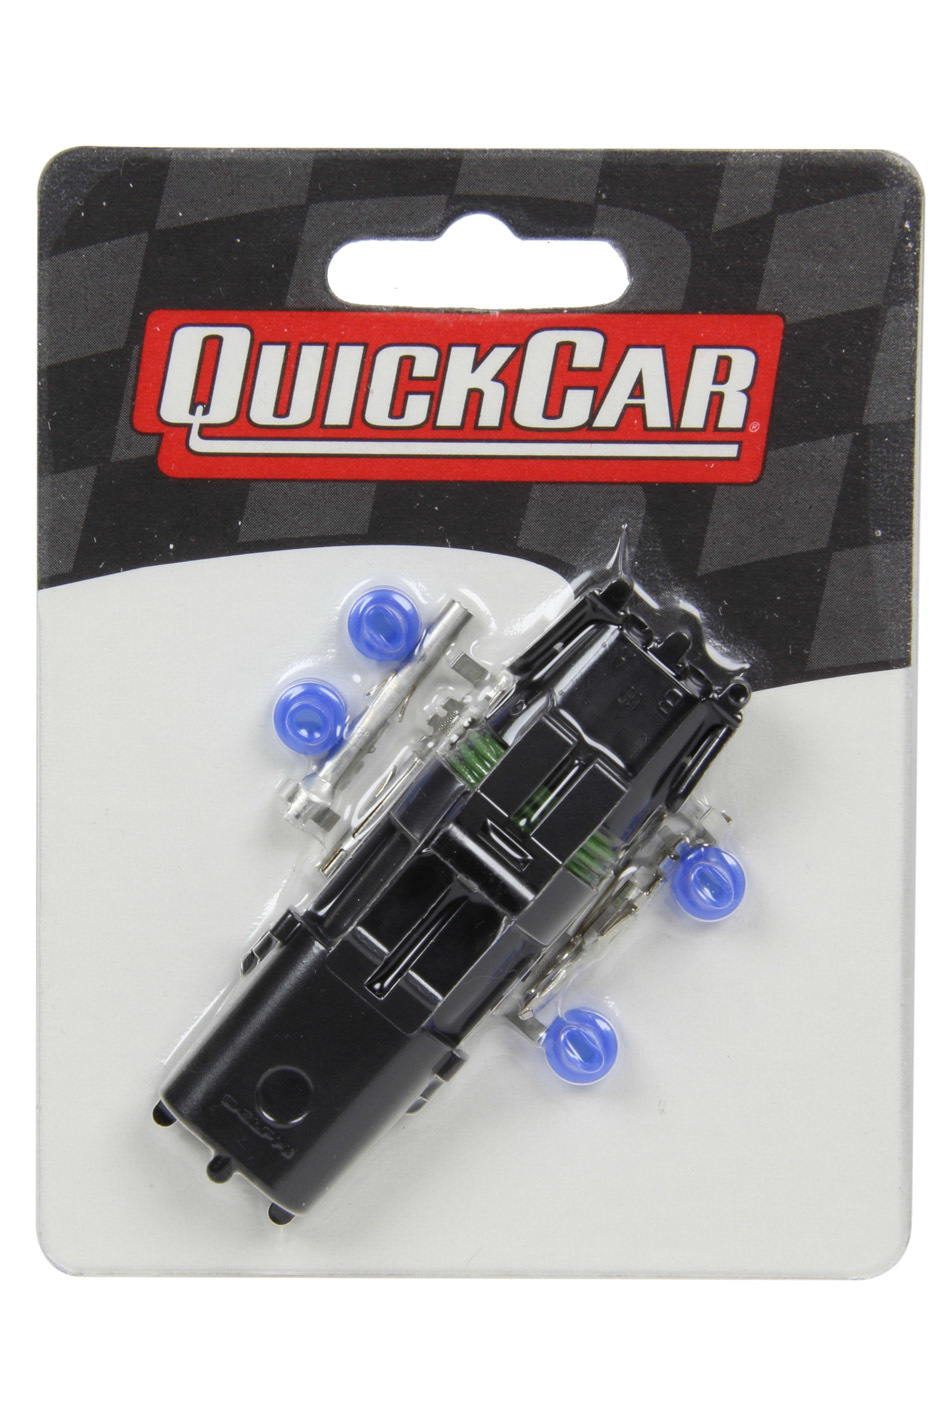 QuickCar 50-322 Electrical Connector, Weather Pack Sealed Connector, 2 Pin, Plastic, Black, Kit